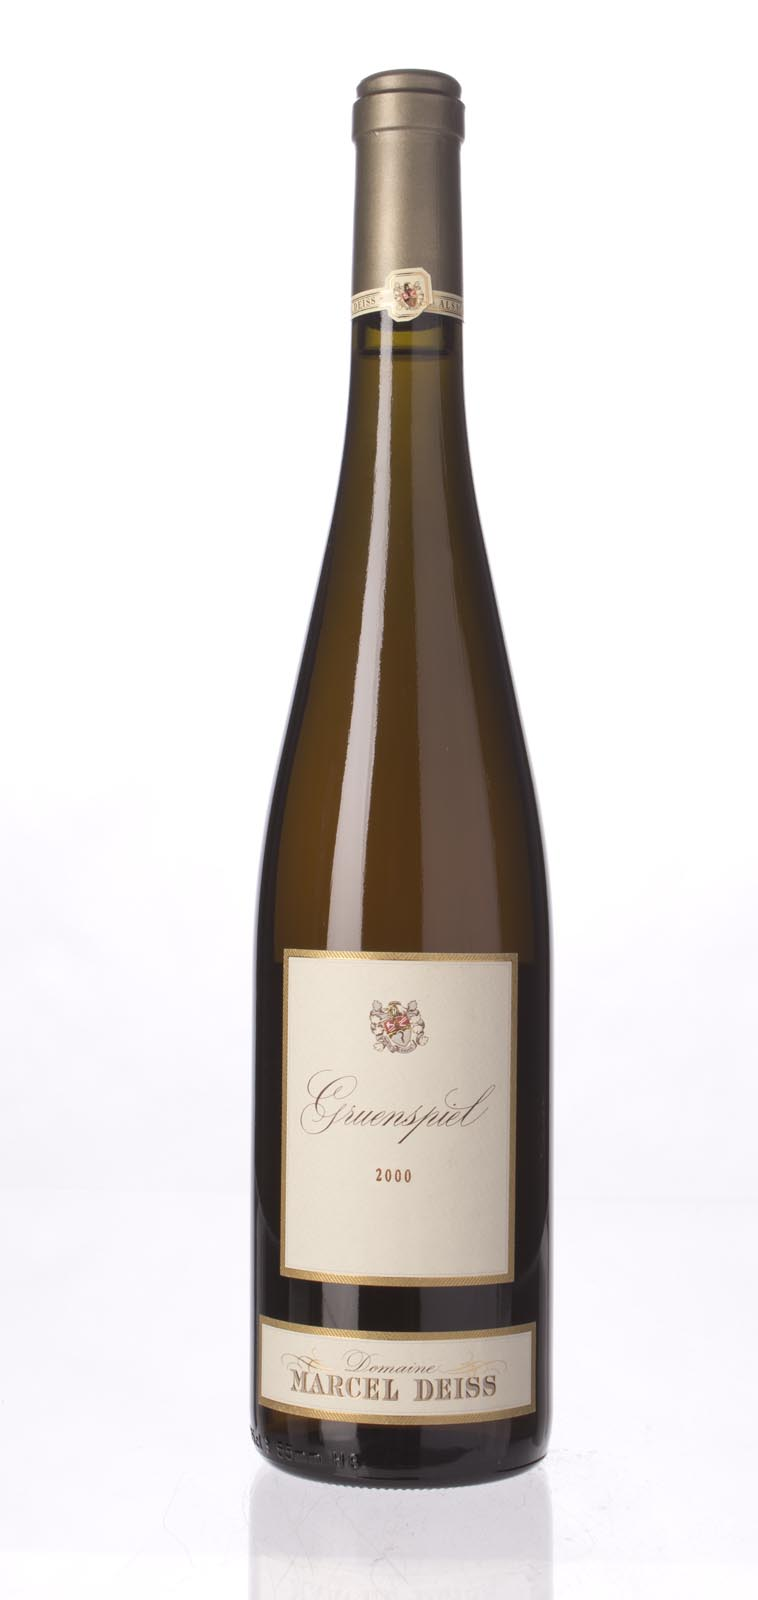 Marcel Deiss Gruenspiel 2000, 750mL (WA92) from The BPW - Merchants of rare and fine wines.